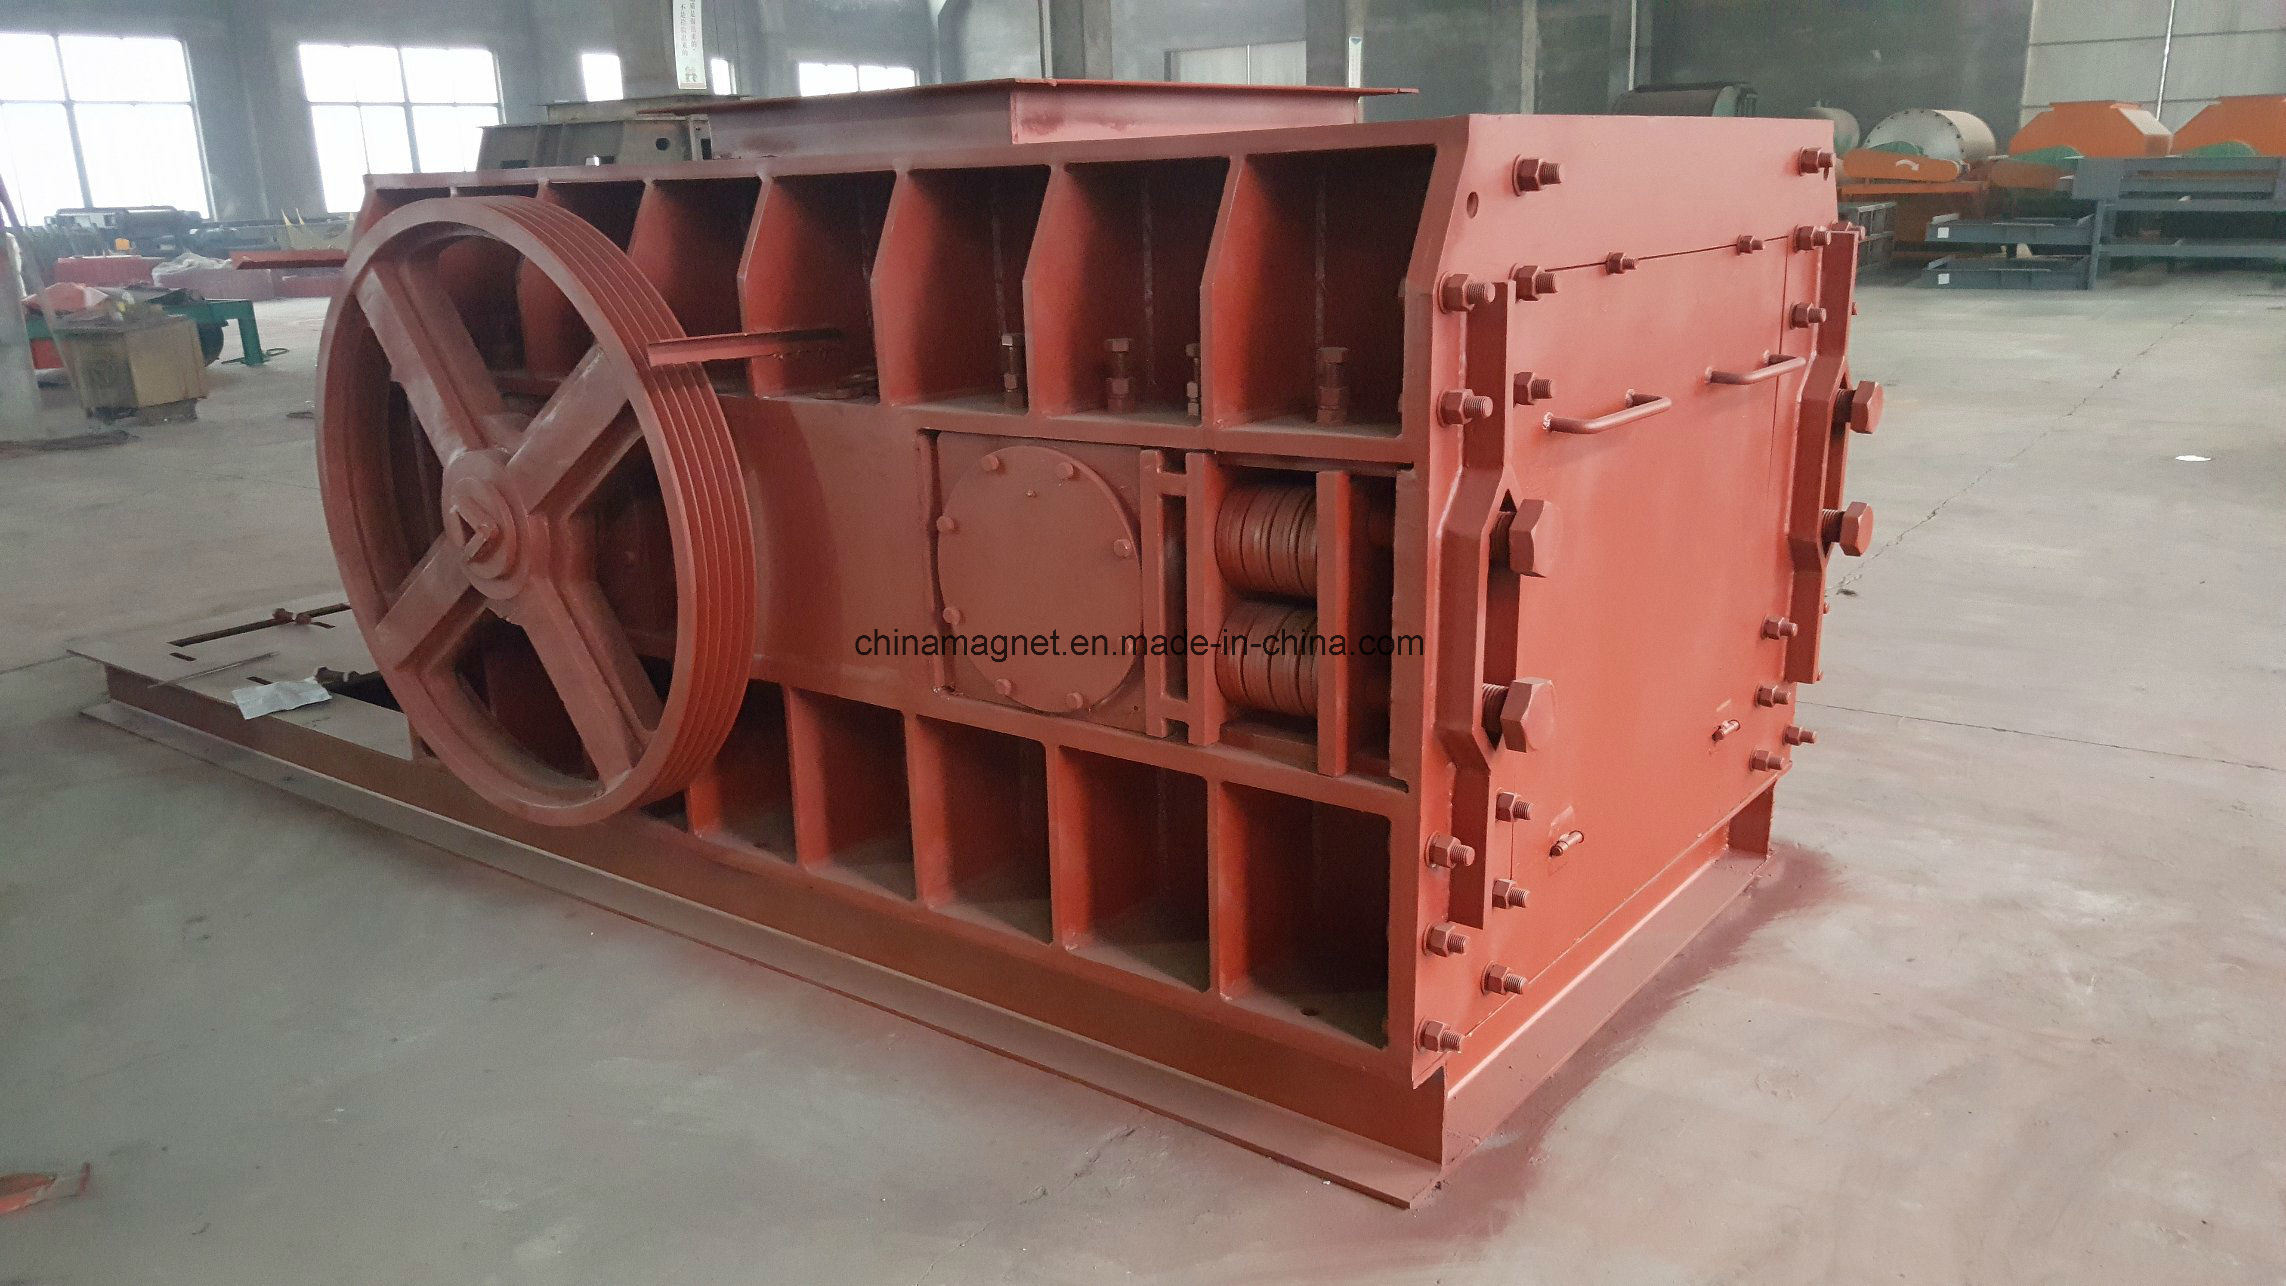 2pg Double Teeth Roller Crusher/ Stone Crusher for Gold Mine/Crushing Aggregate/ Rock/ Stone,